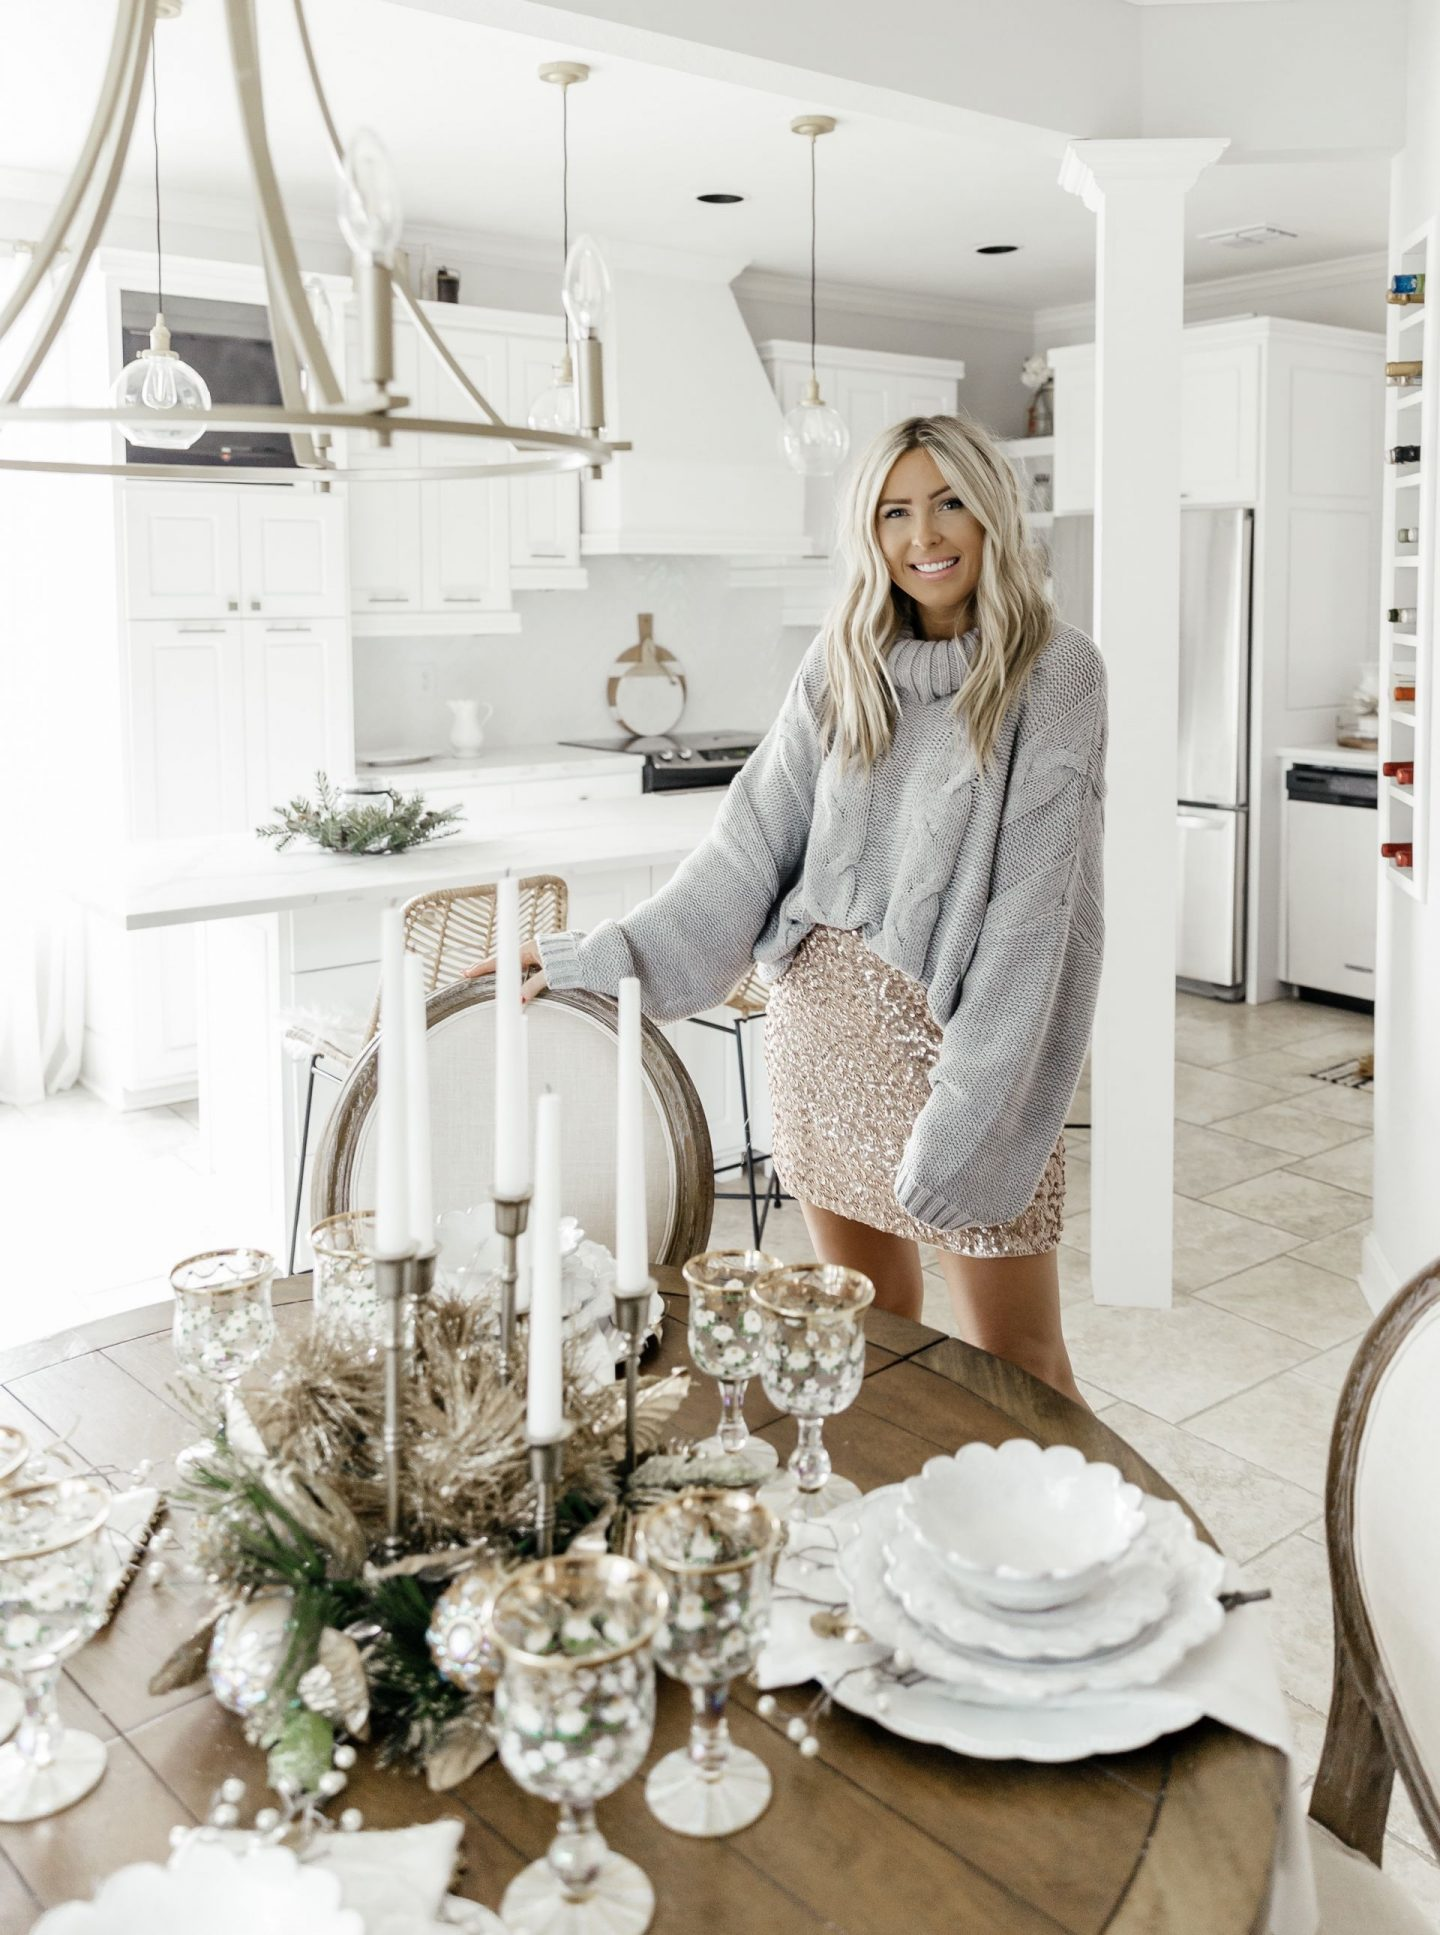 Everyday Tablescape with A Little Holiday Flare with MacKenzie-Childs